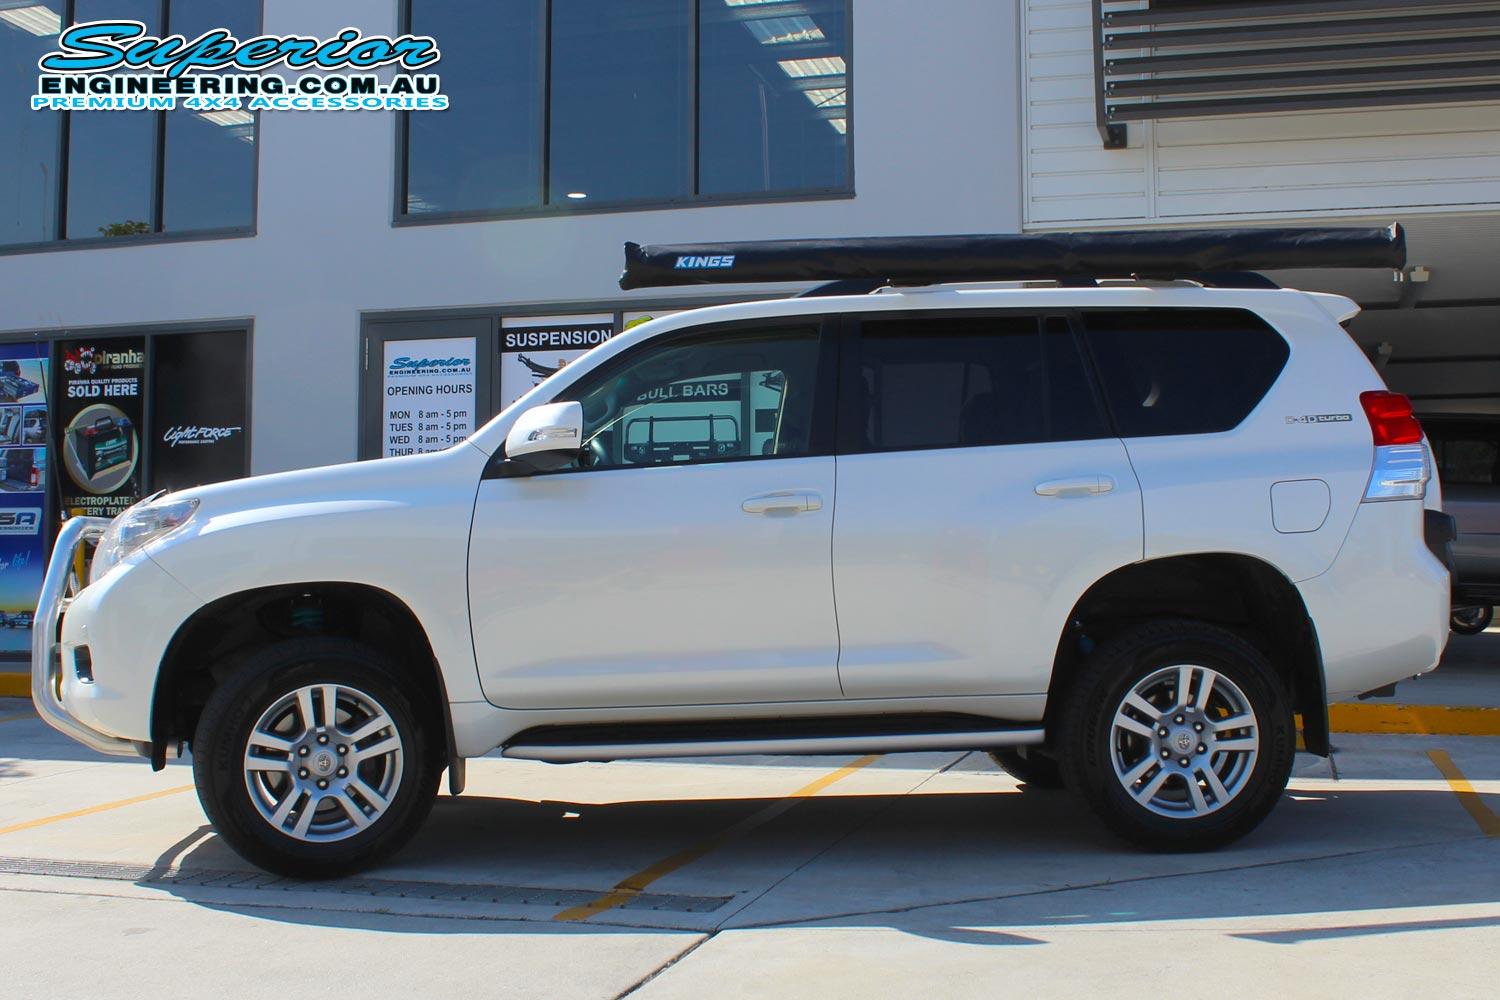 Left side view of a white 150 Prado after fitting the 2 inch Bilstein lift kit at the Superior Engineering 4WD retail showroom